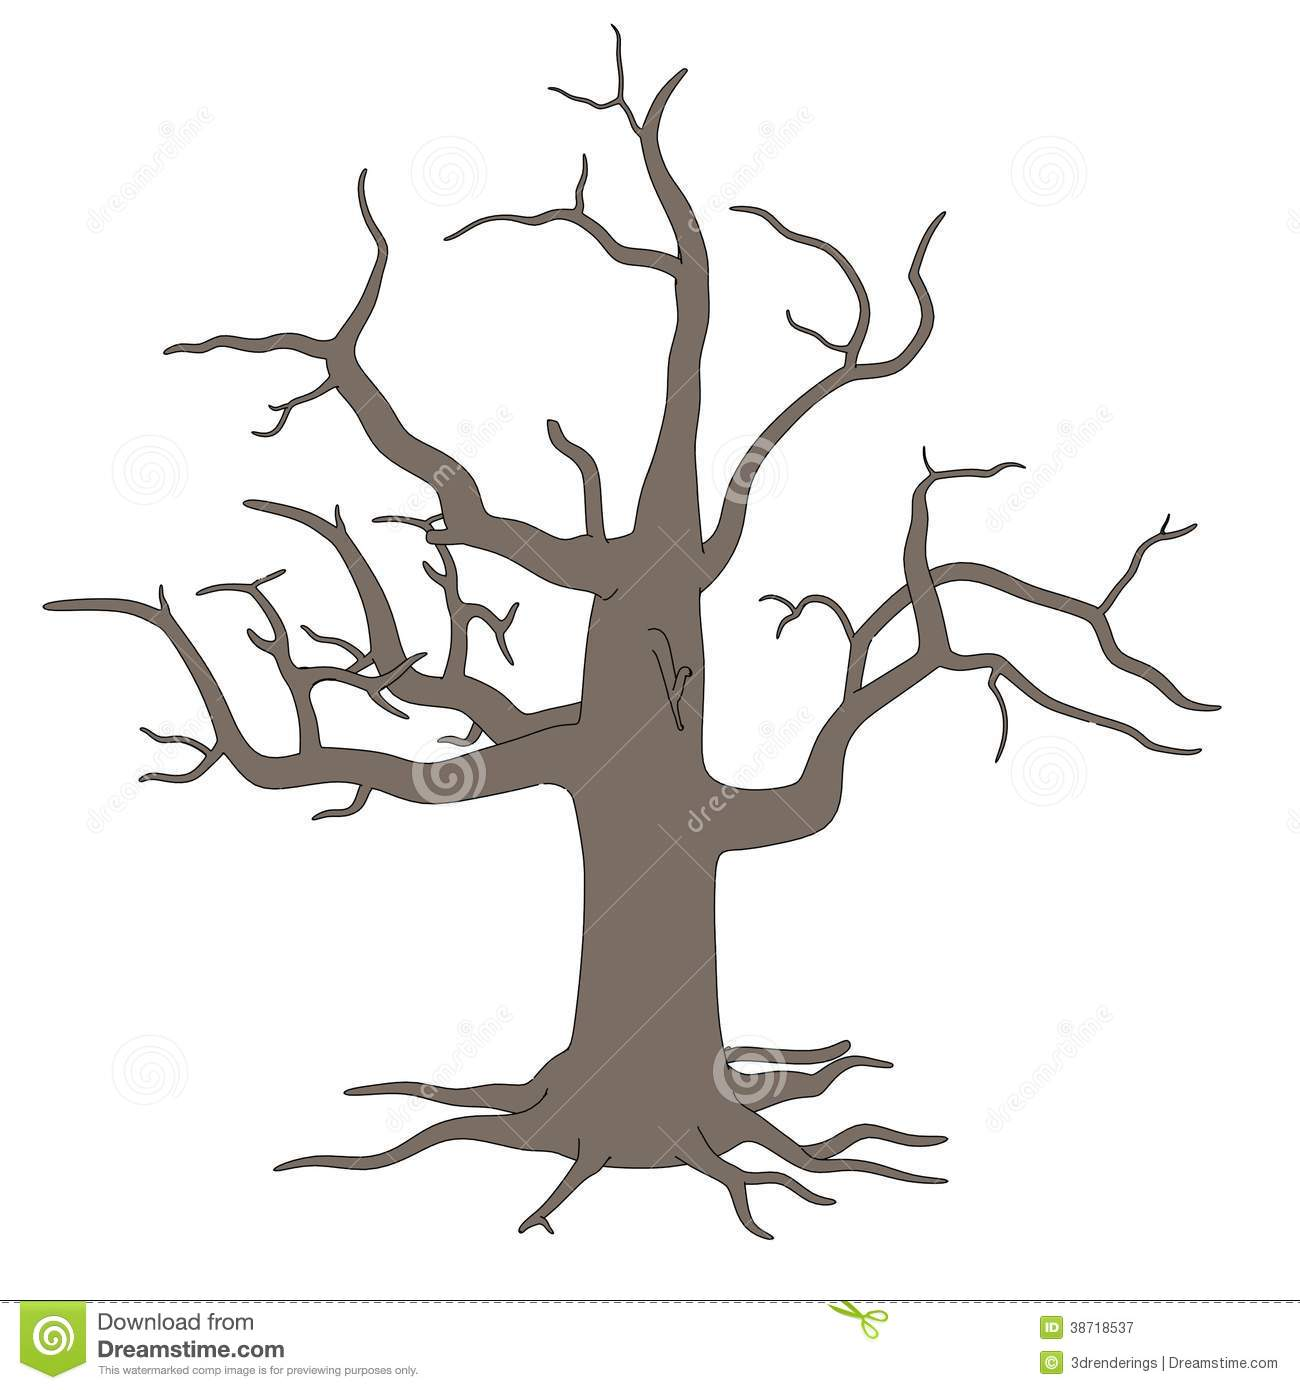 Cartoon Dead Tree Stock Illustrations 2 820 Cartoon Dead Tree Stock Illustrations Vectors Clipart Dreamstime Dead tree cartoon 3 of 10. dreamstime com